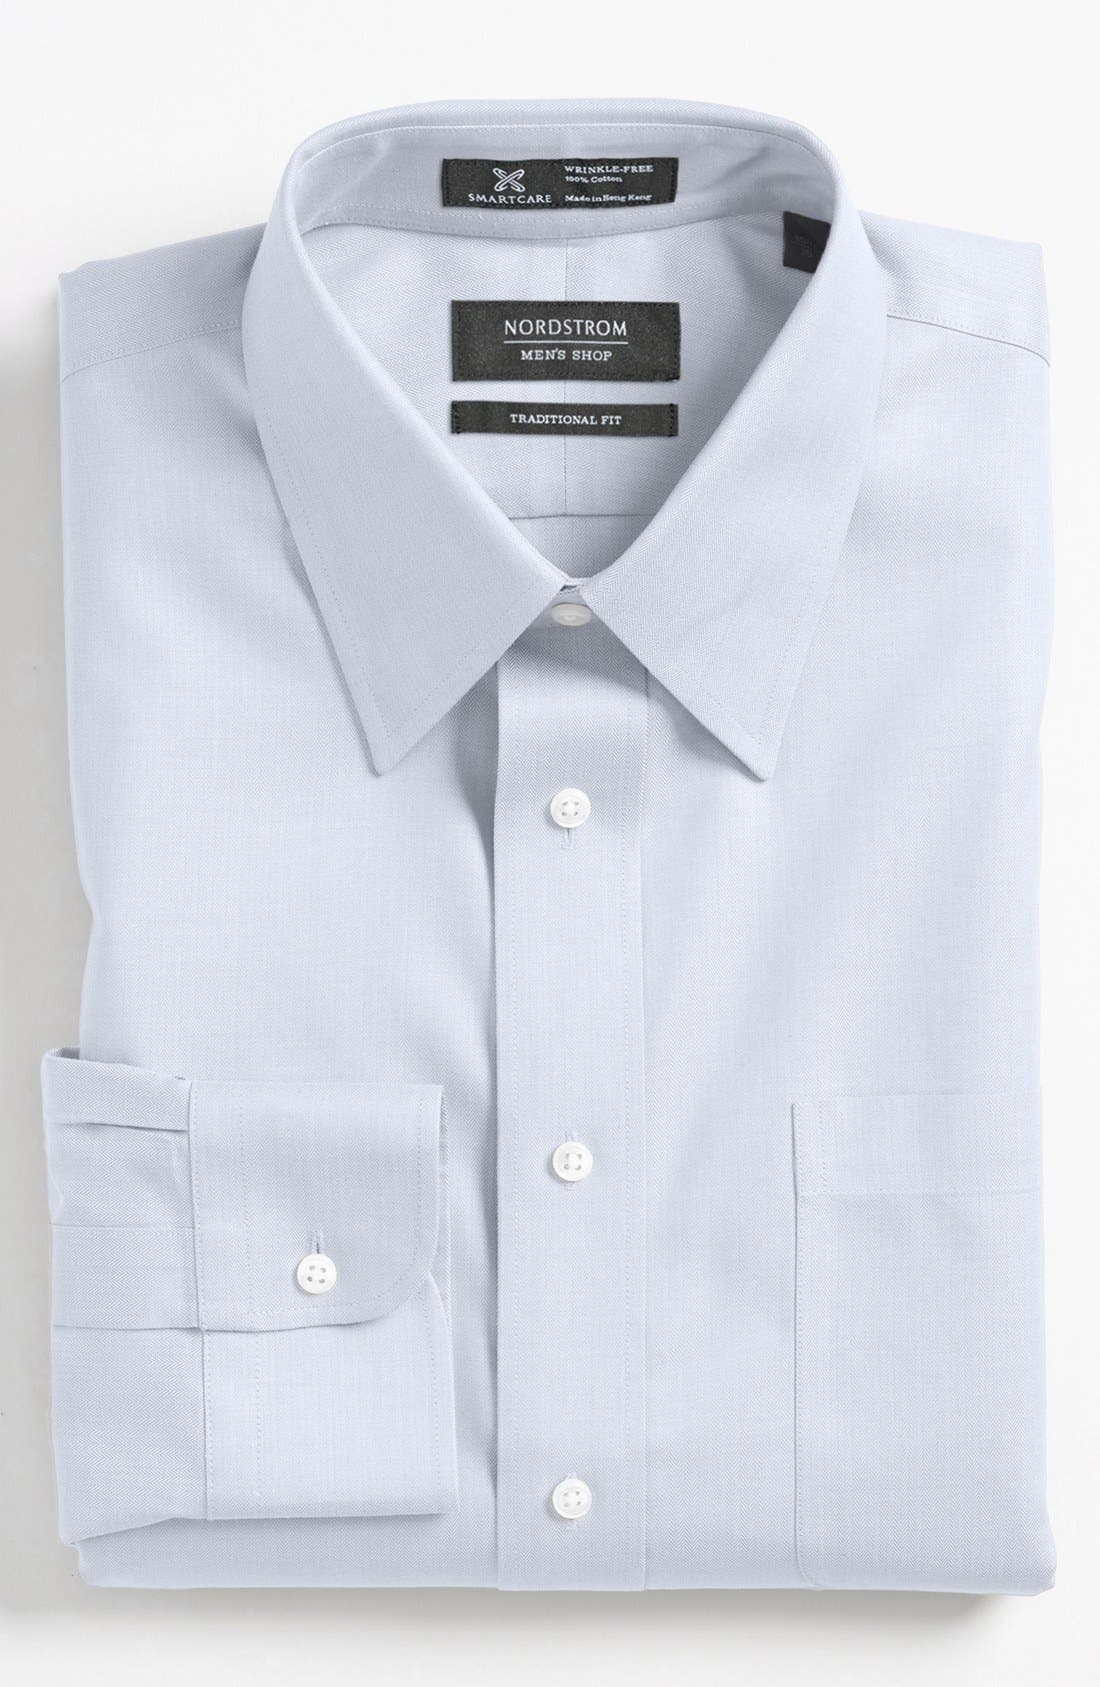 Alternate Image 1 Selected - Nordstrom Men's Shop Smartcare™ Wrinkle Free Traditional Fit Herringbone Dress Shirt